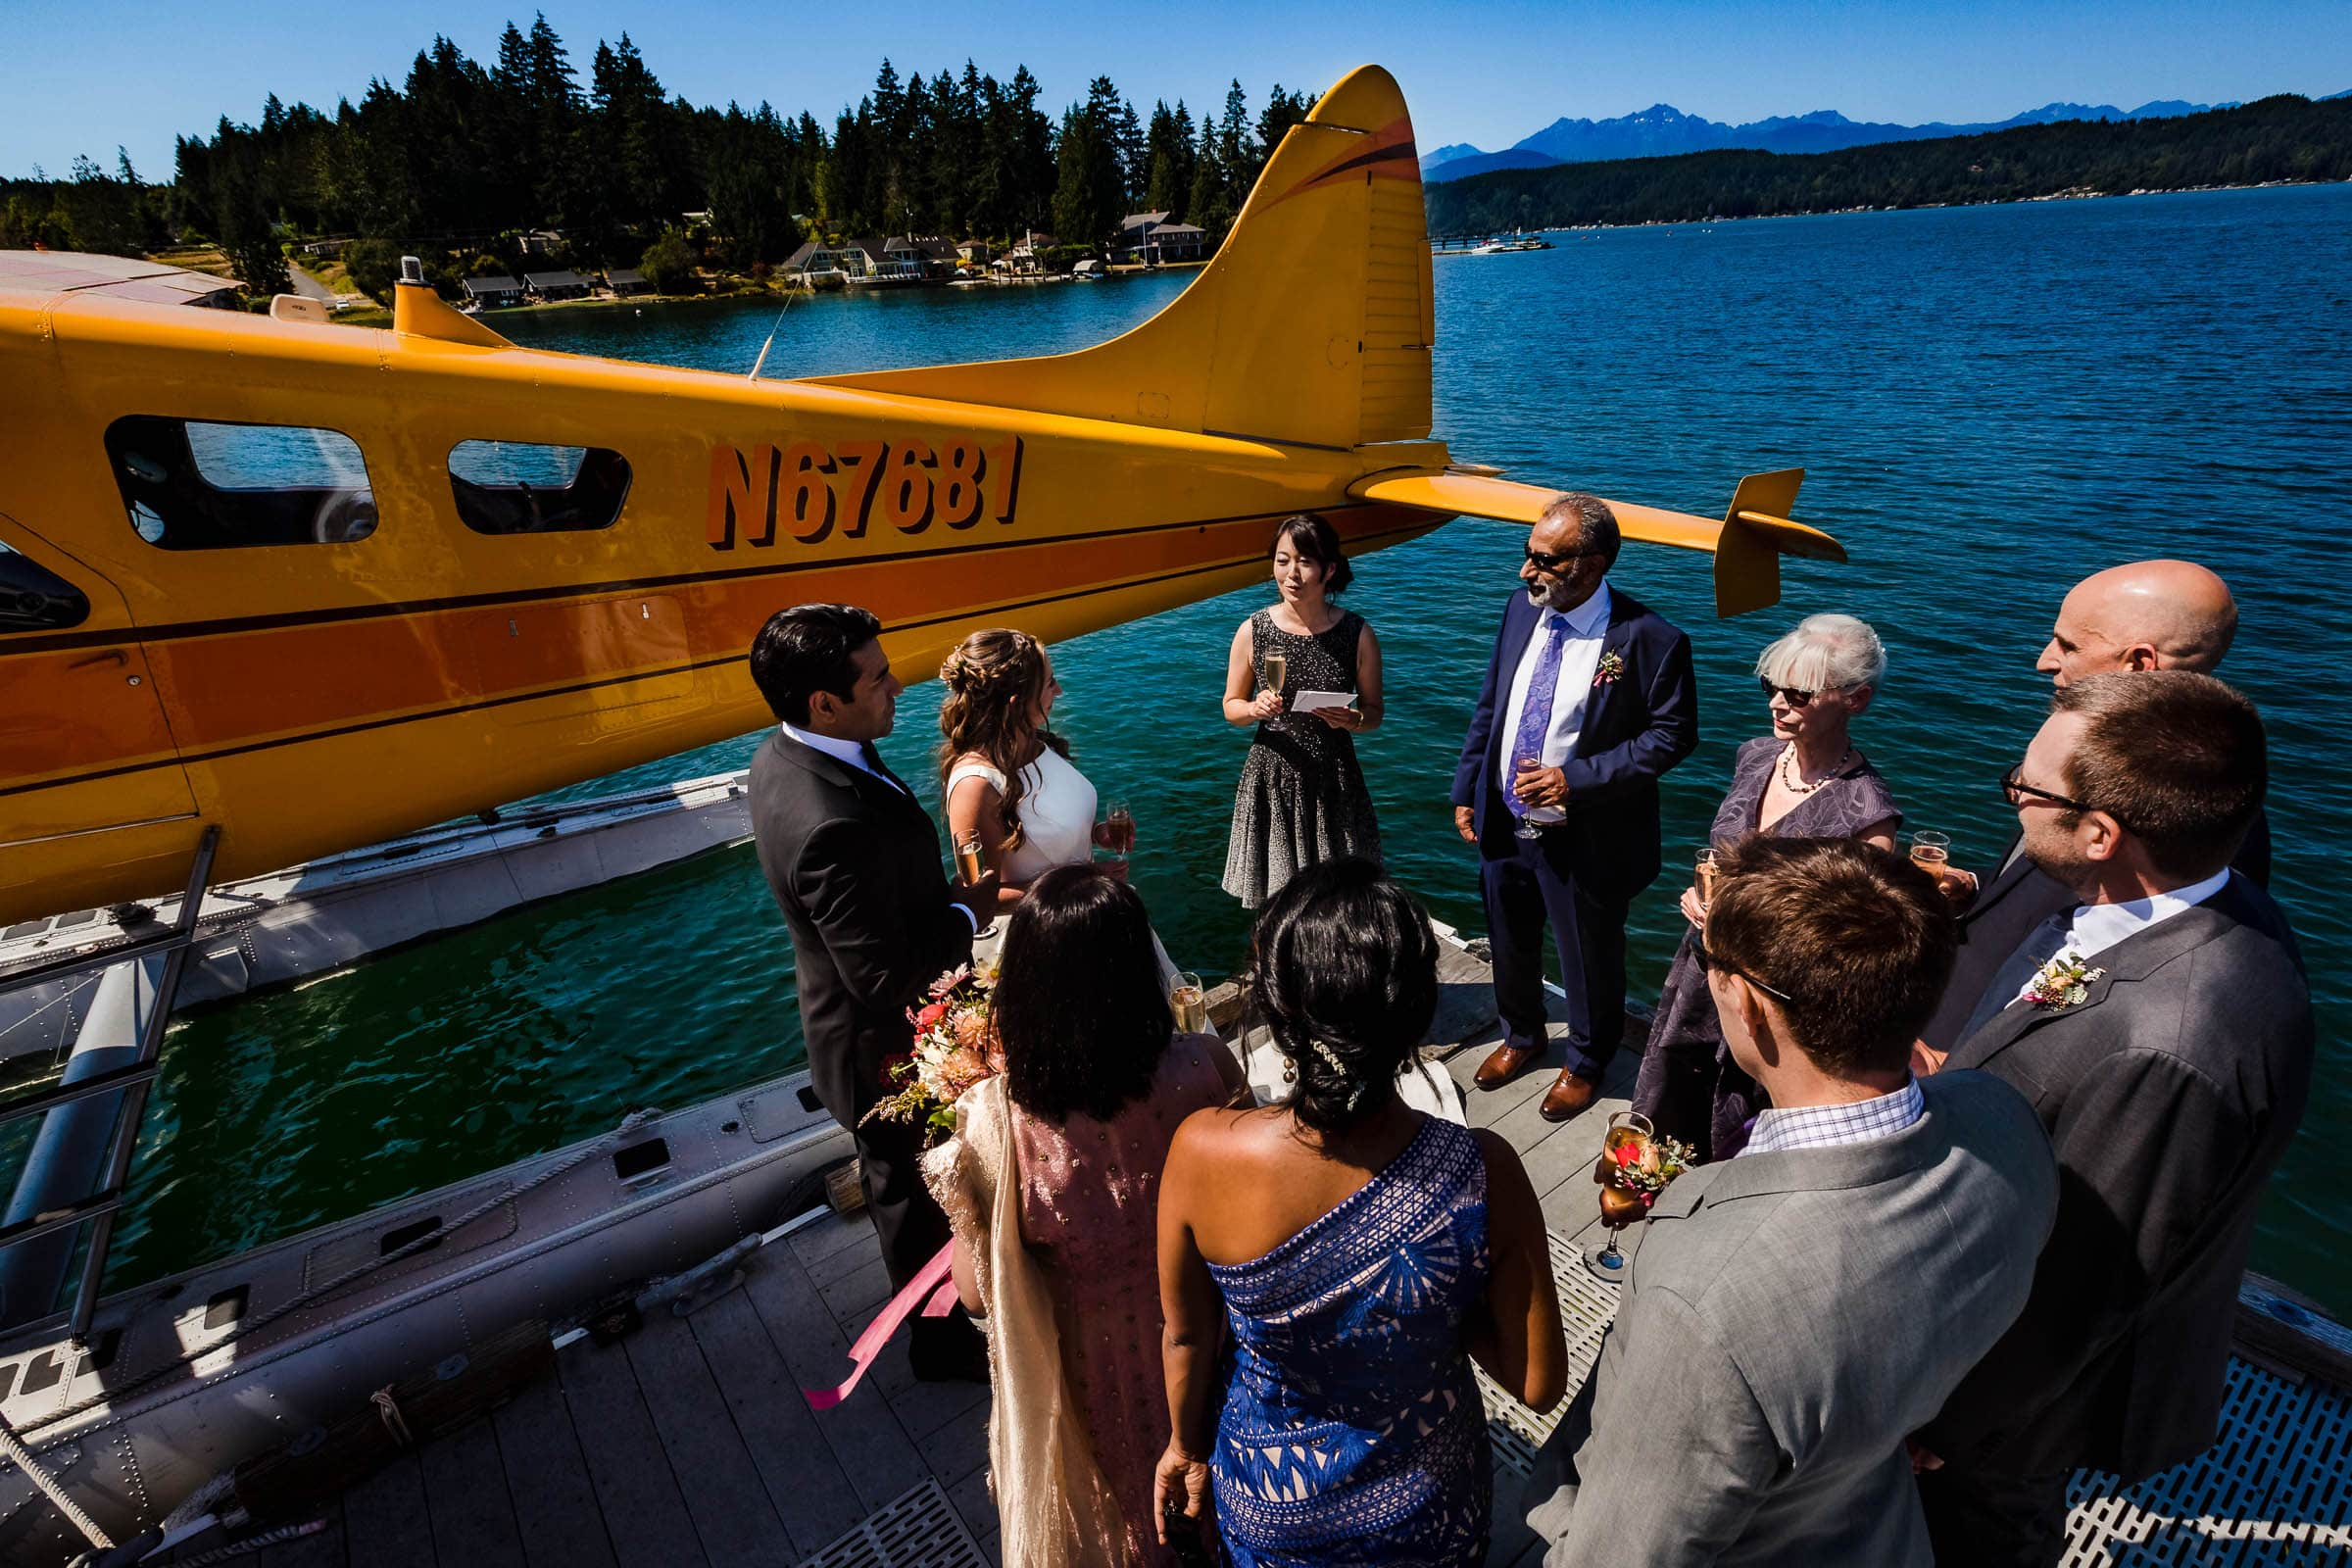 Family and friends gathering around seaplane for an Alderbrook elopement and champagne toast send off to Hope Island.